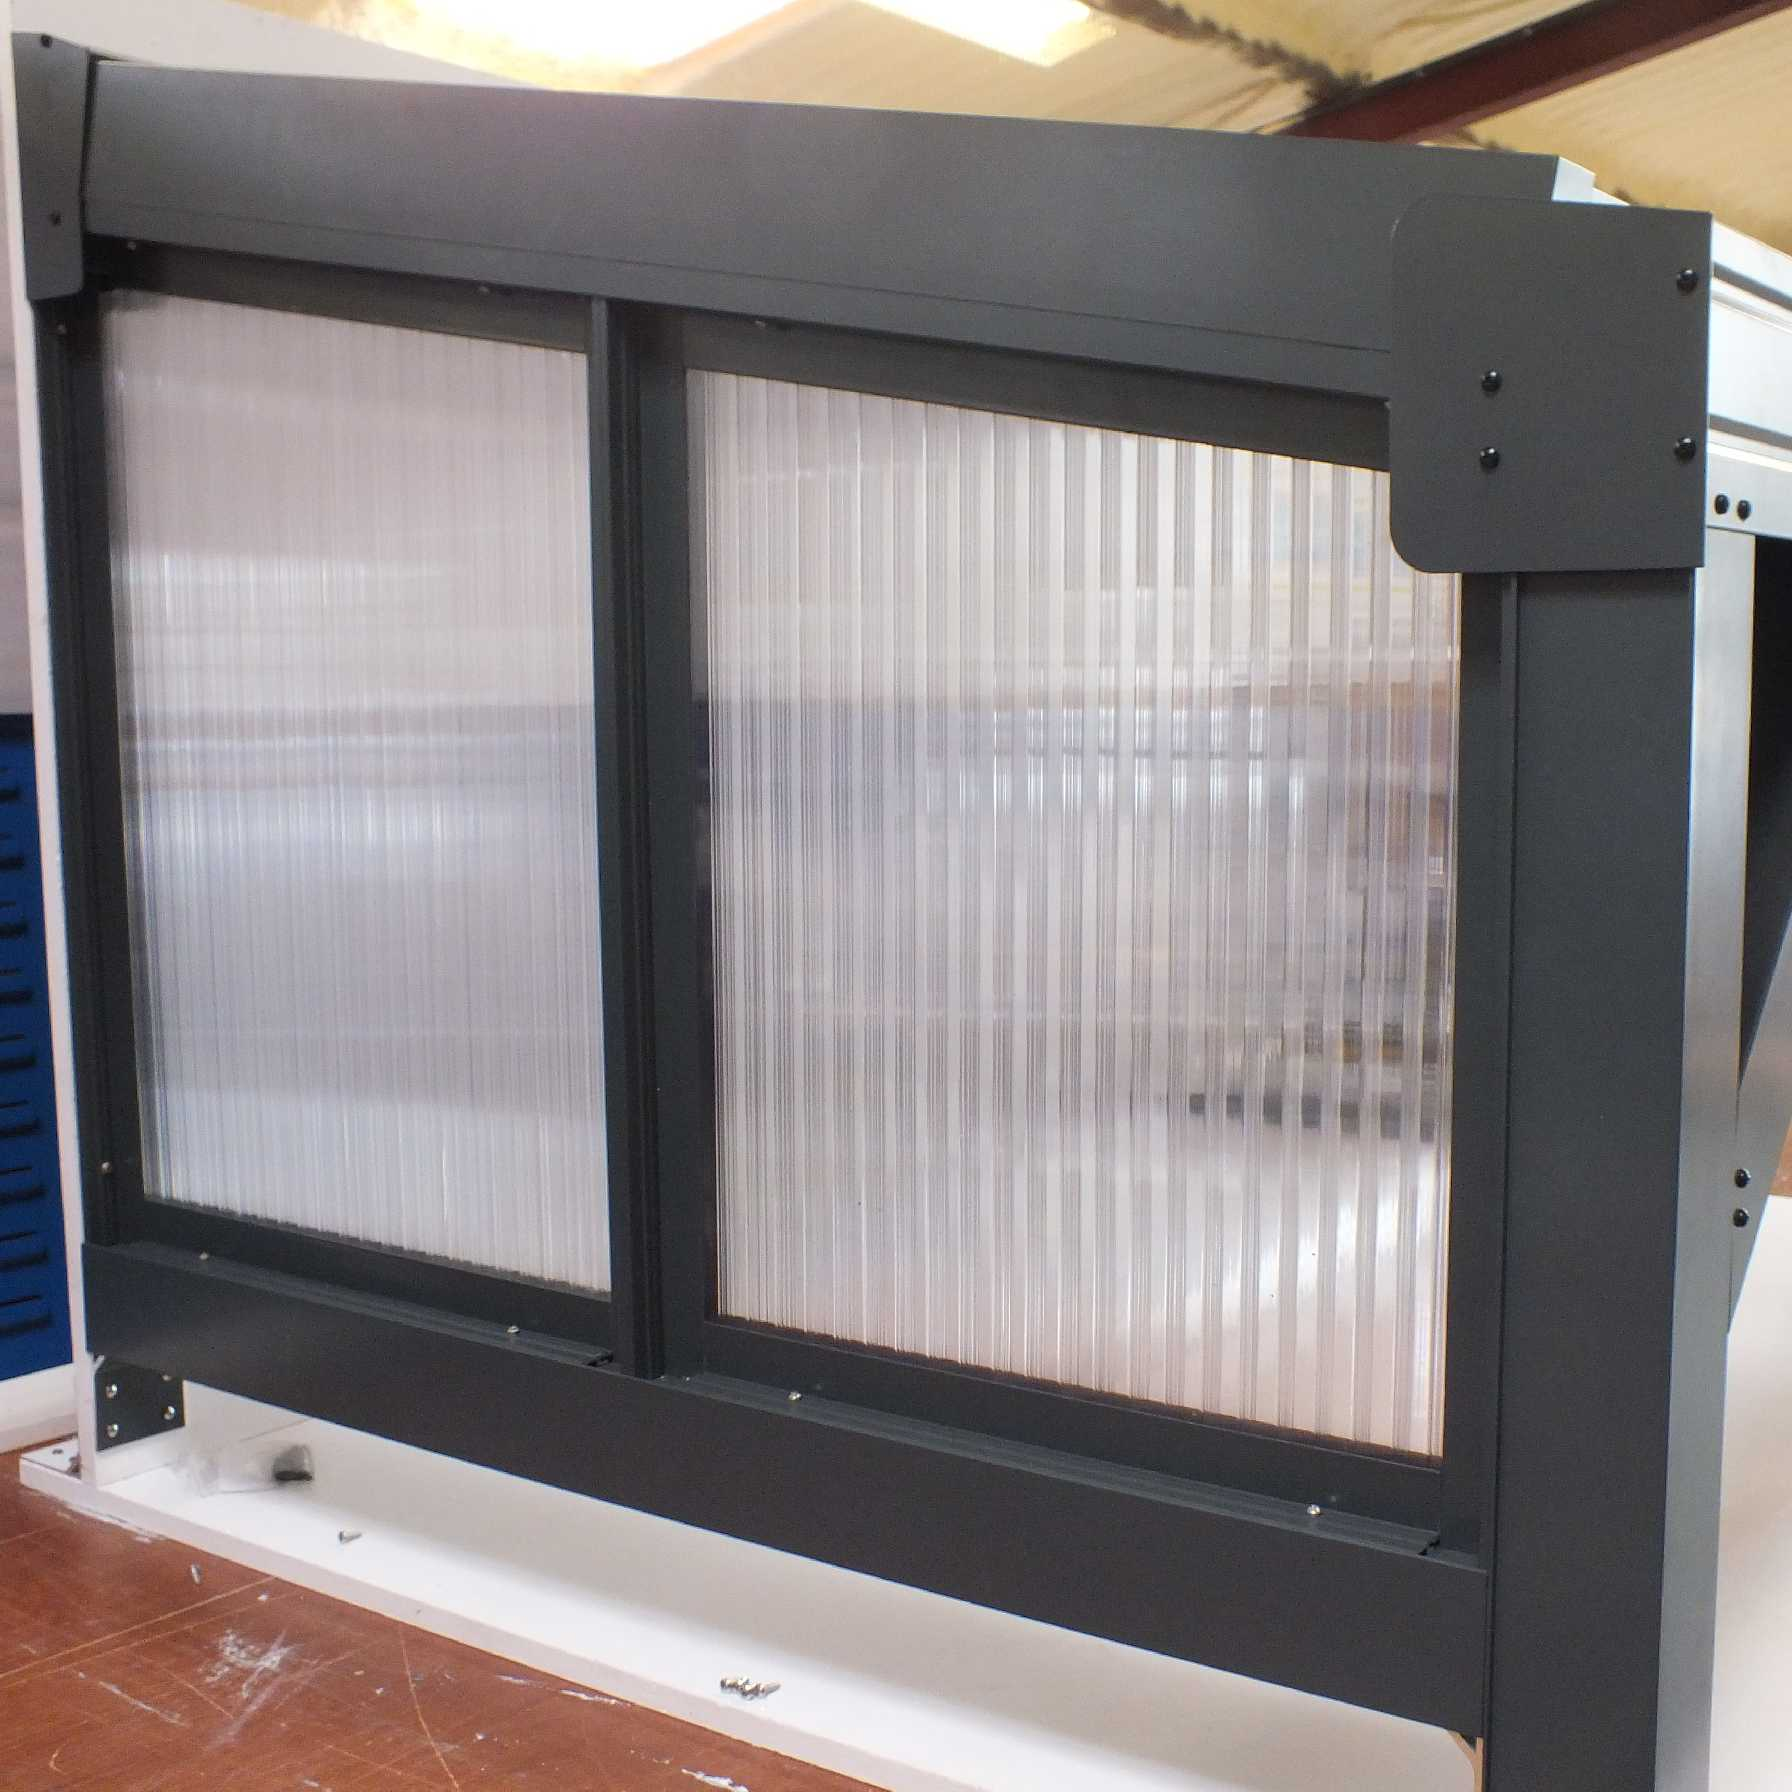 Affordable Omega Smart Canopy - FULL Side In-Fill Section for Sides of Canopy, 16mm Polycarbonate In-Fill Panels, White Frame